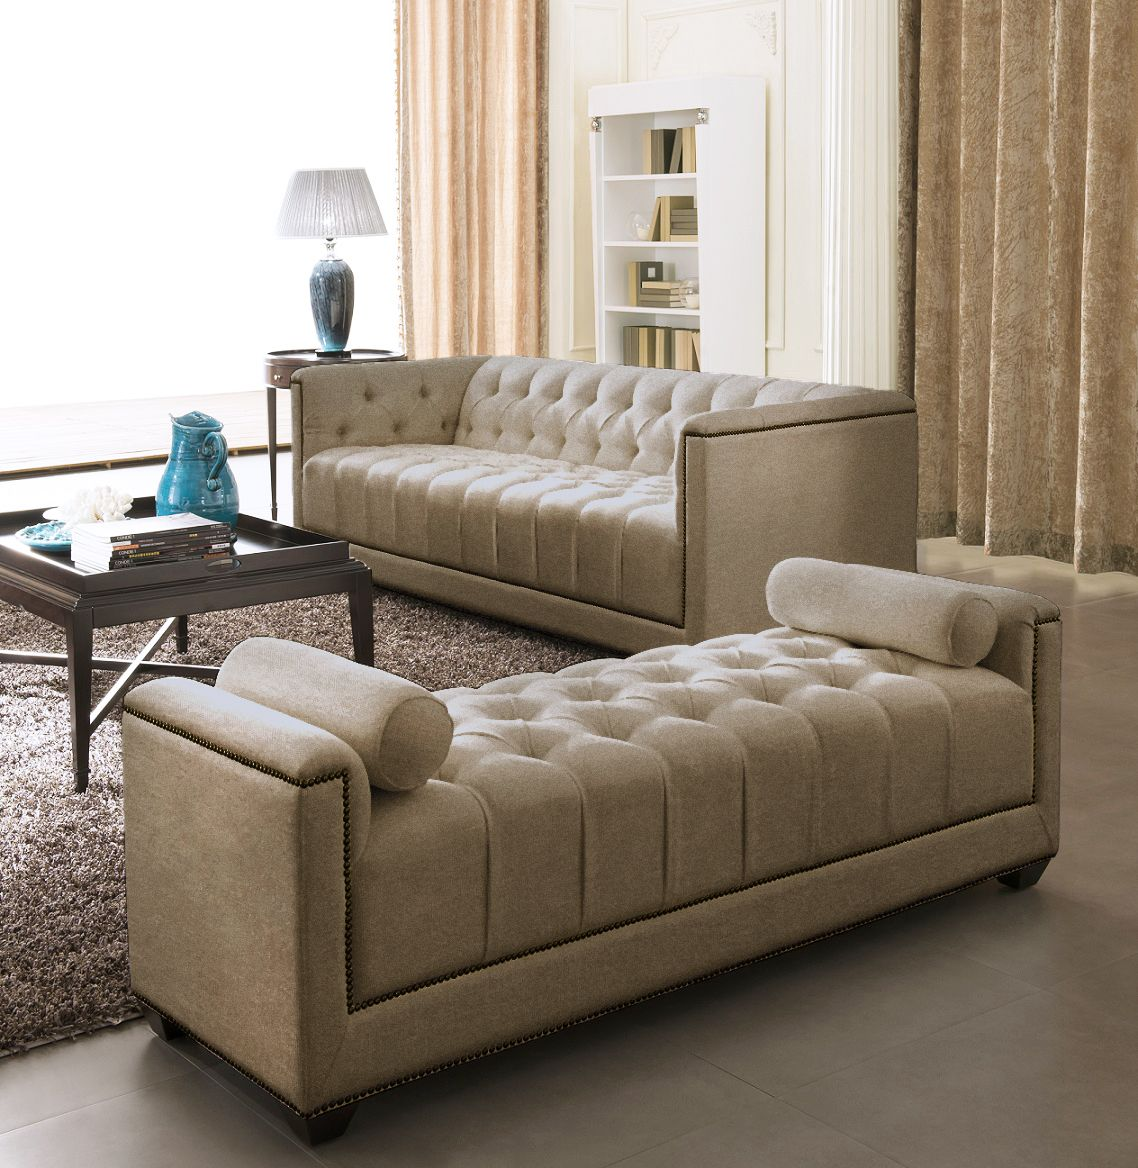 Fabric Sofa Set Eden Gold Home Inspiration Sofa Modern Sofa - Modern-and-unique-sofa-designs